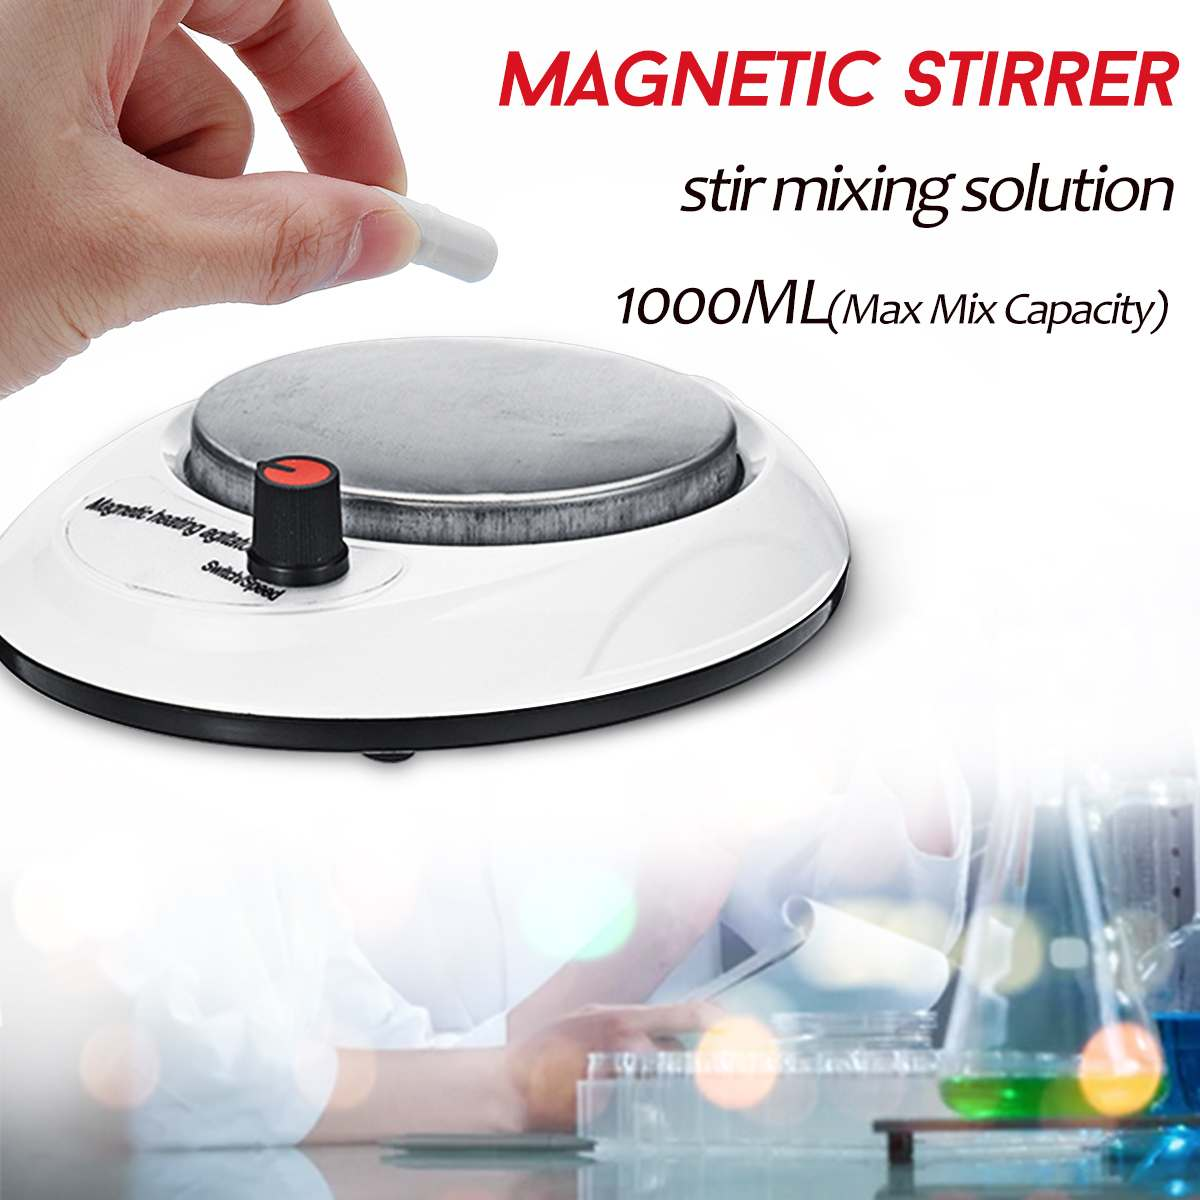 1000ml Heat Magnetic Stirrer Mixer With Stirer Bar For Laboratory Miniature 0-2200RPM Speed Magnetic Stirrer